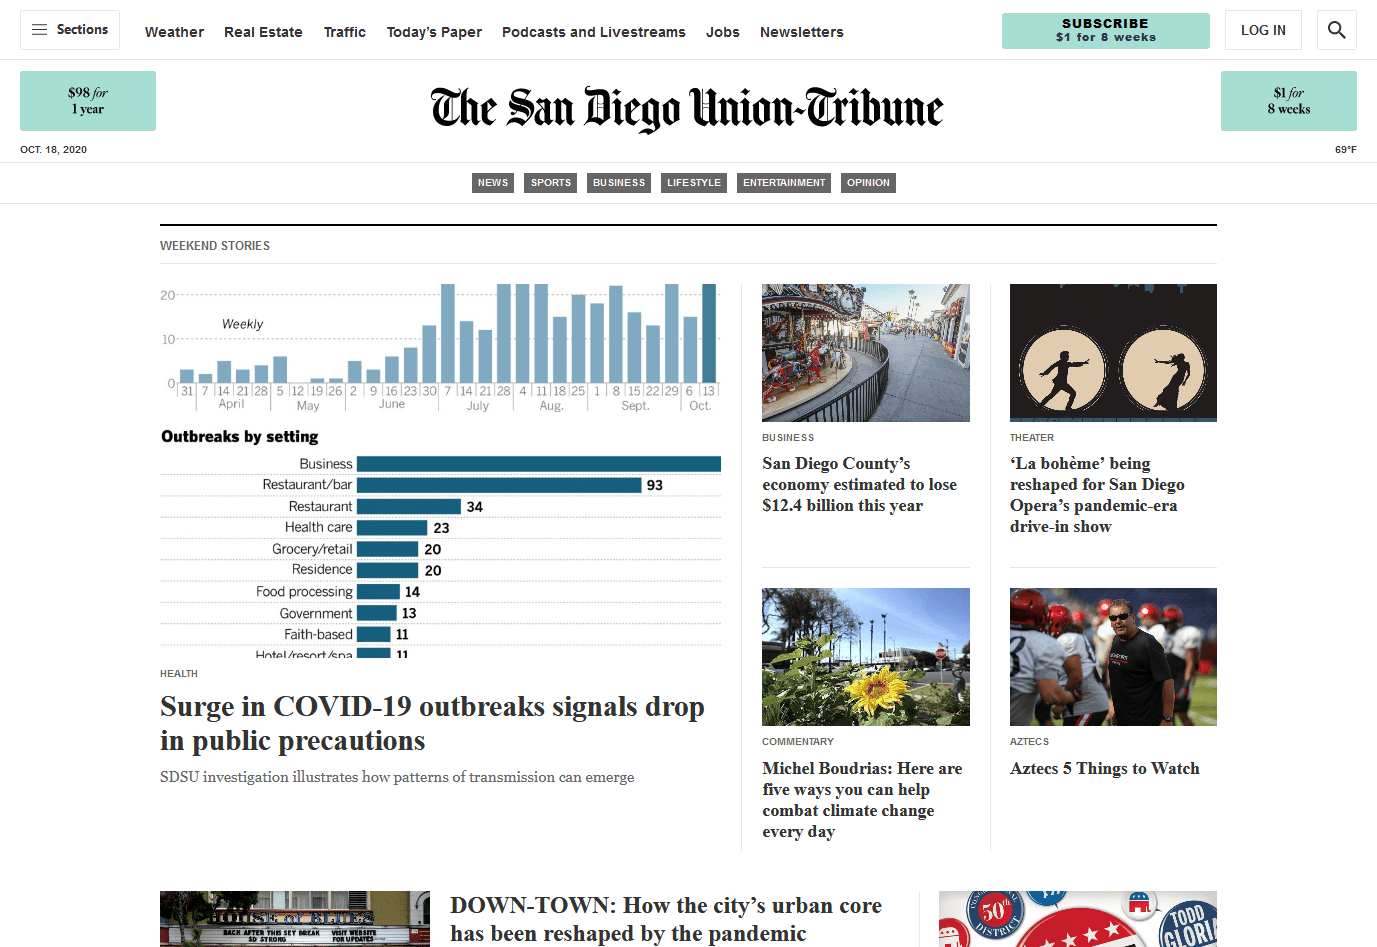 San Diego Union-Tribune